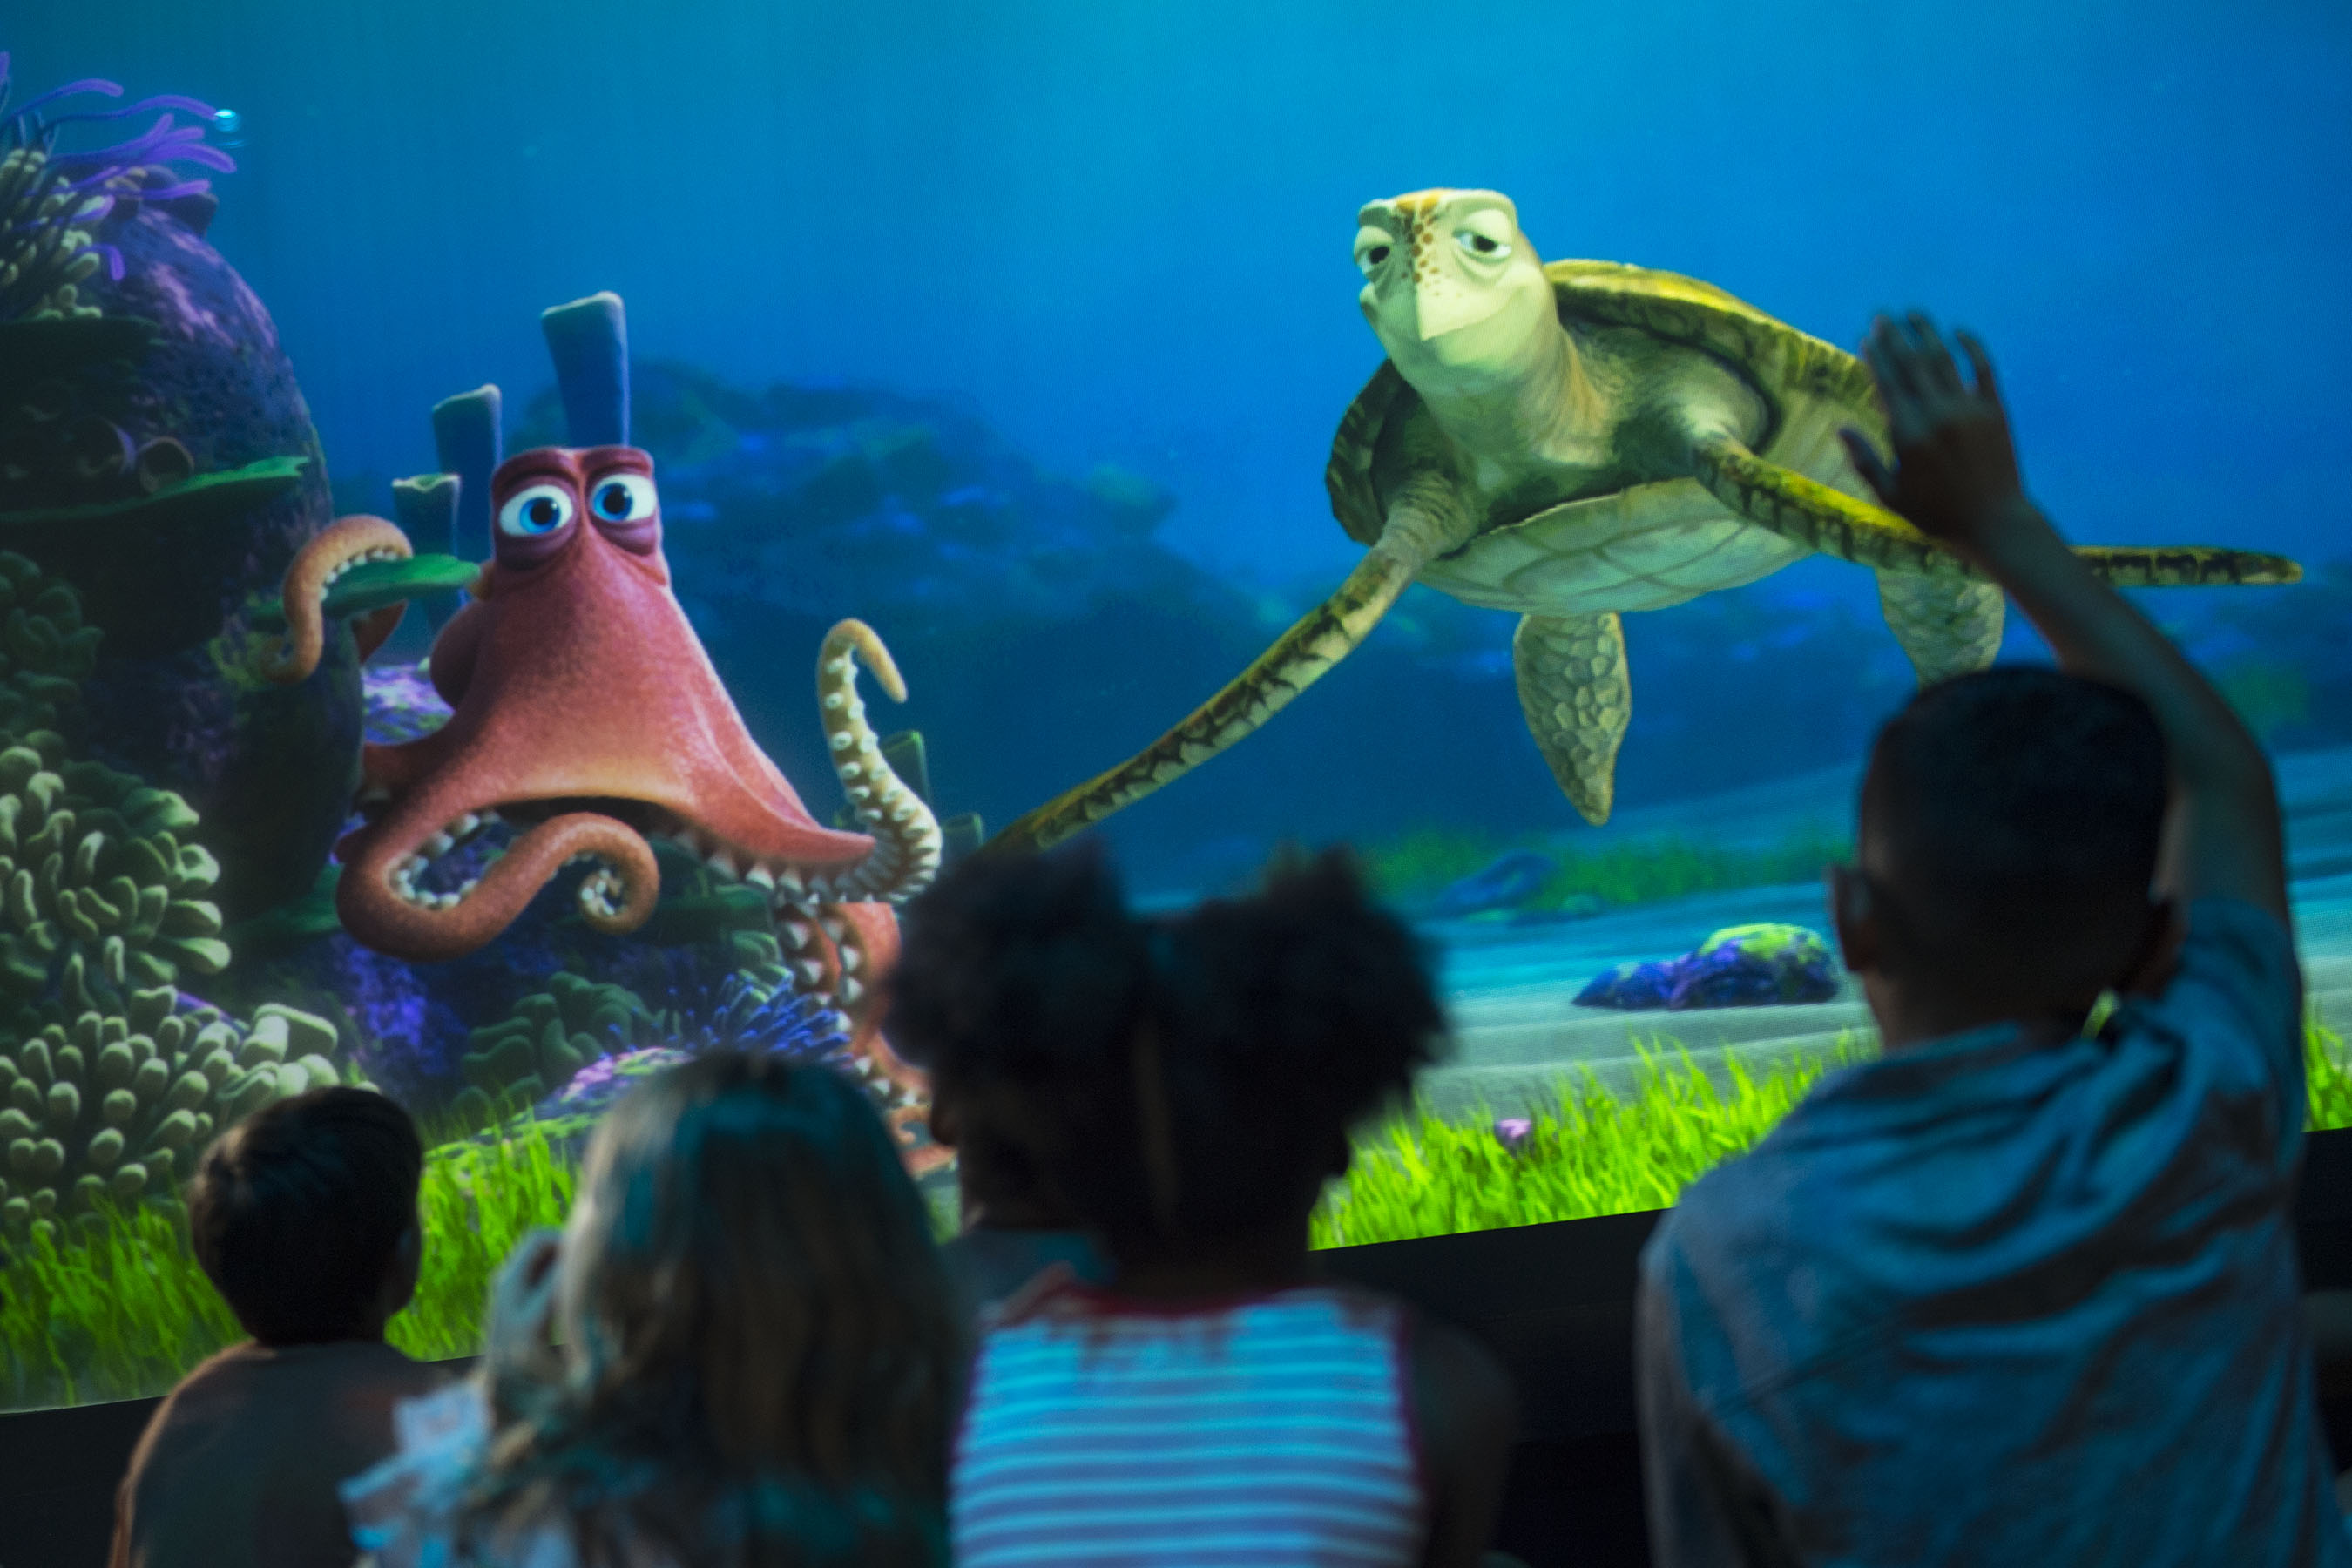 Where To Meet Finding Dory Characters At Disney Disney